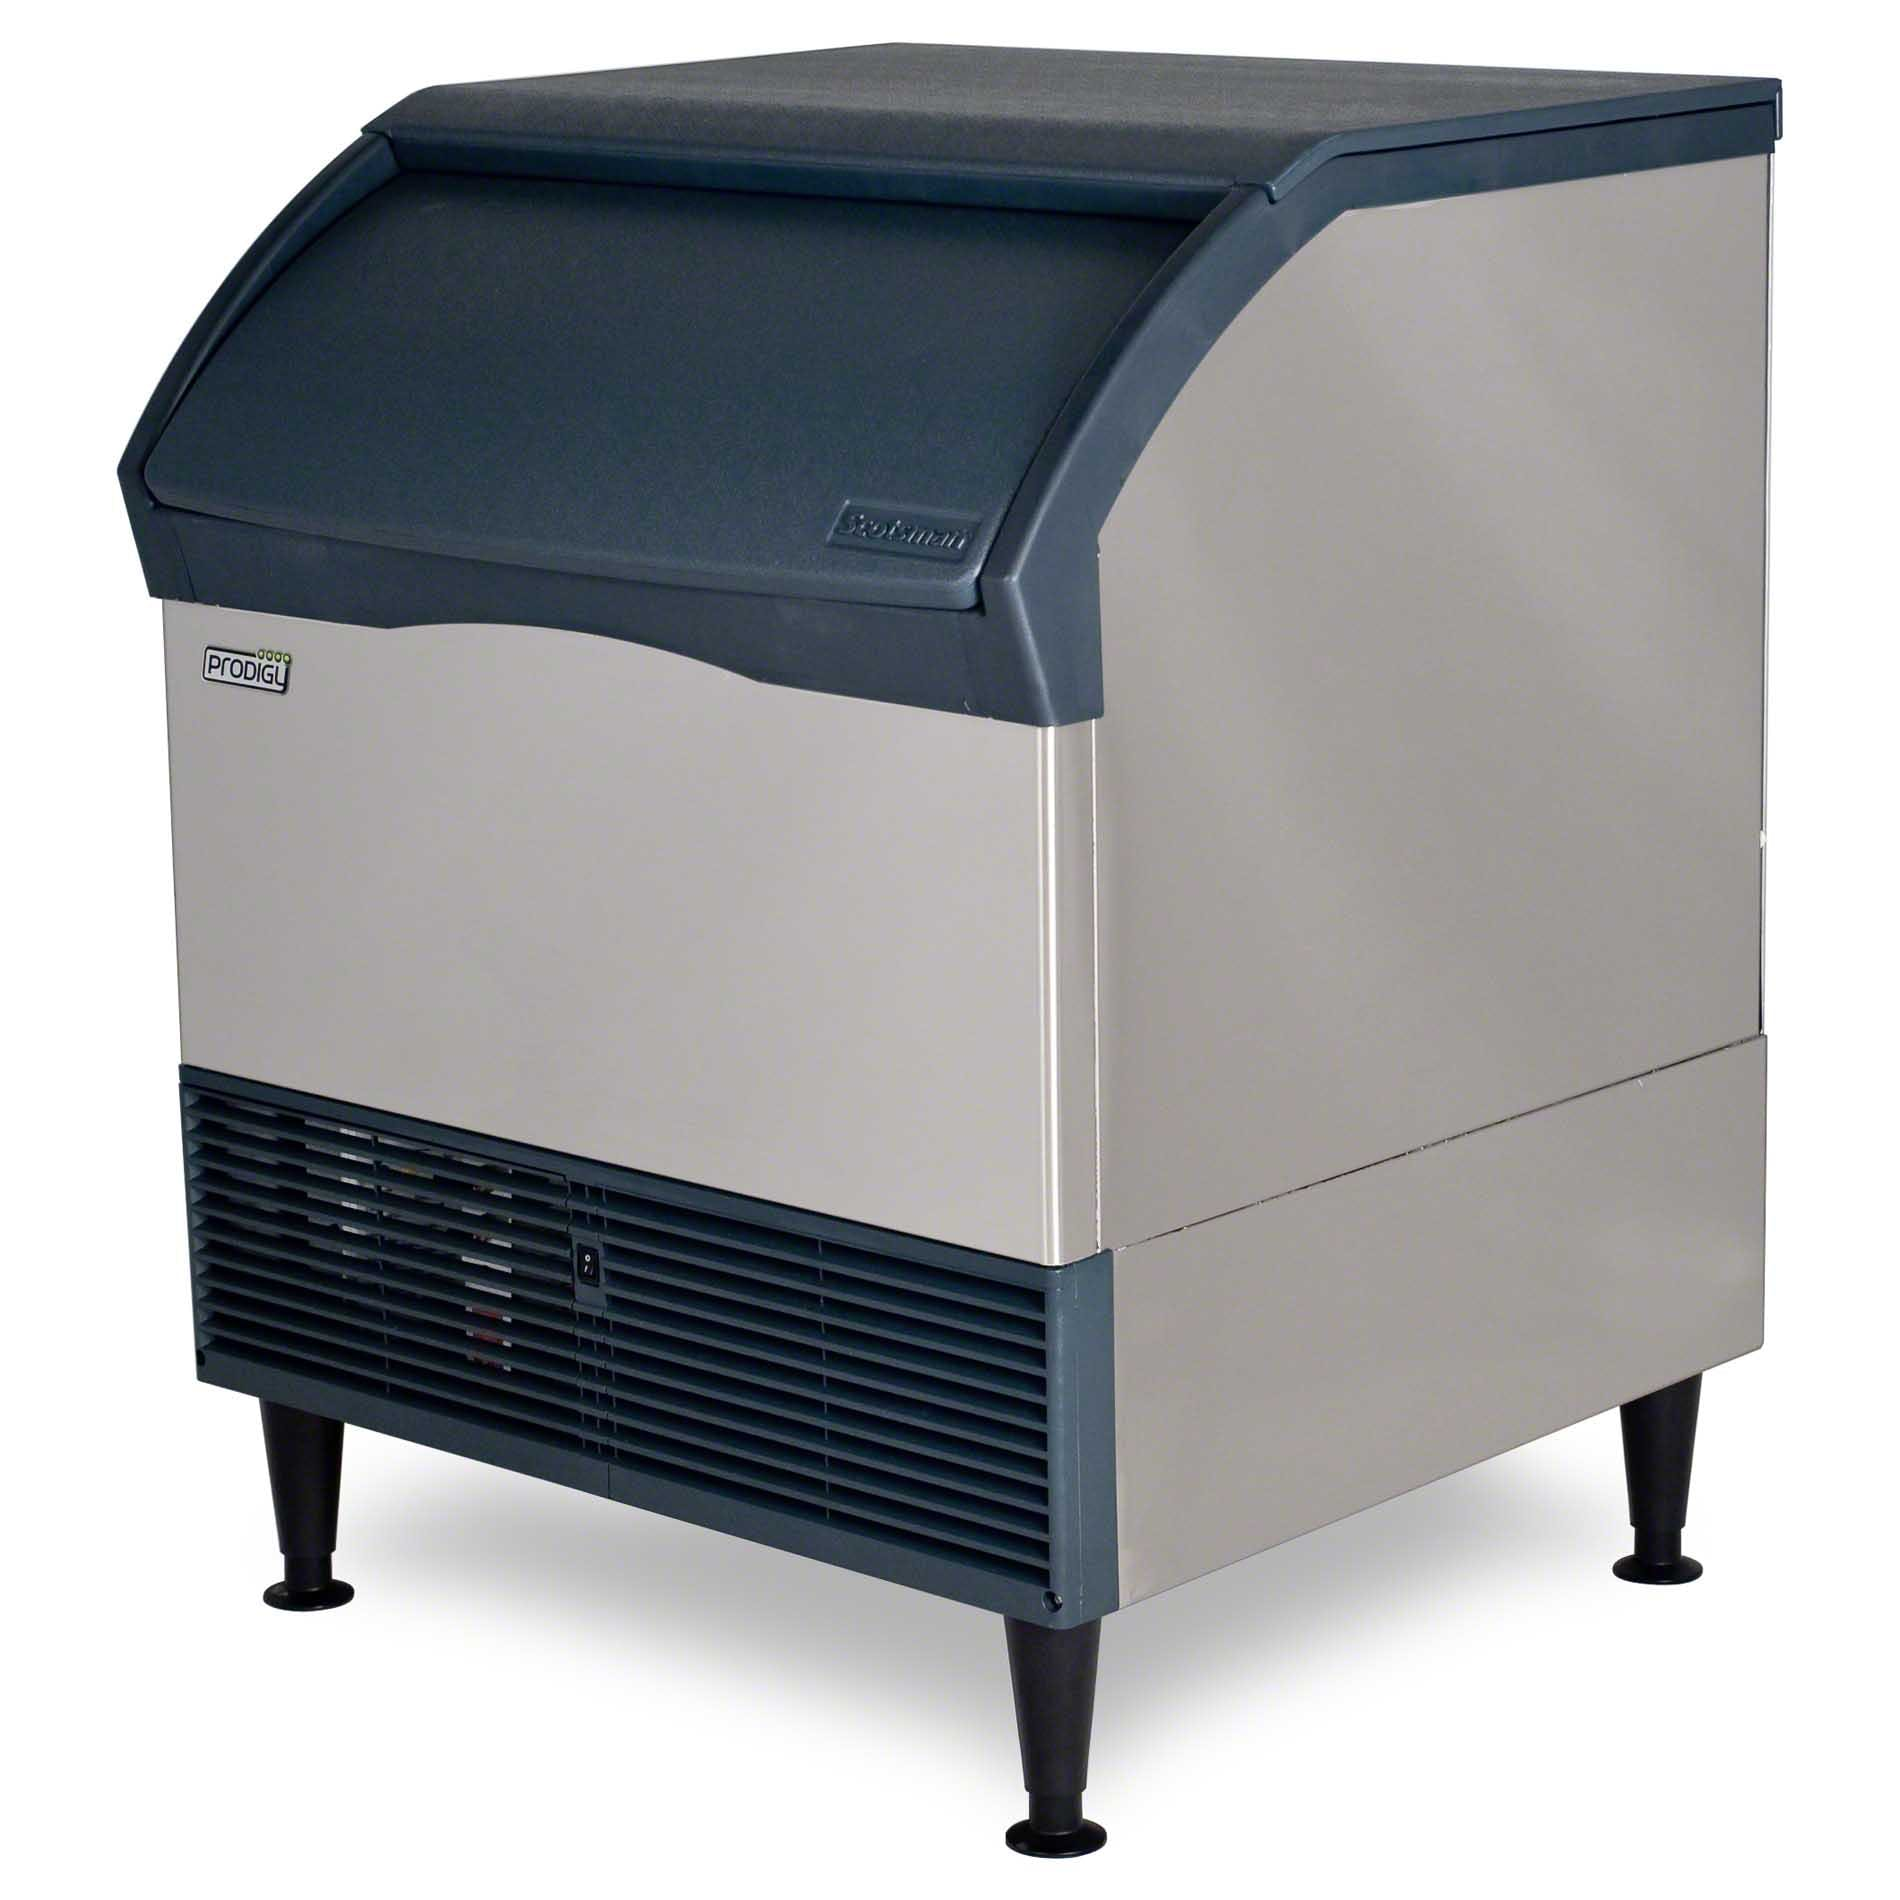 Scotsman - CU3030SA-1A 250 lb Self-Contained Cube Ice Machine - Prodigy® Series - sold by Food Service Warehouse